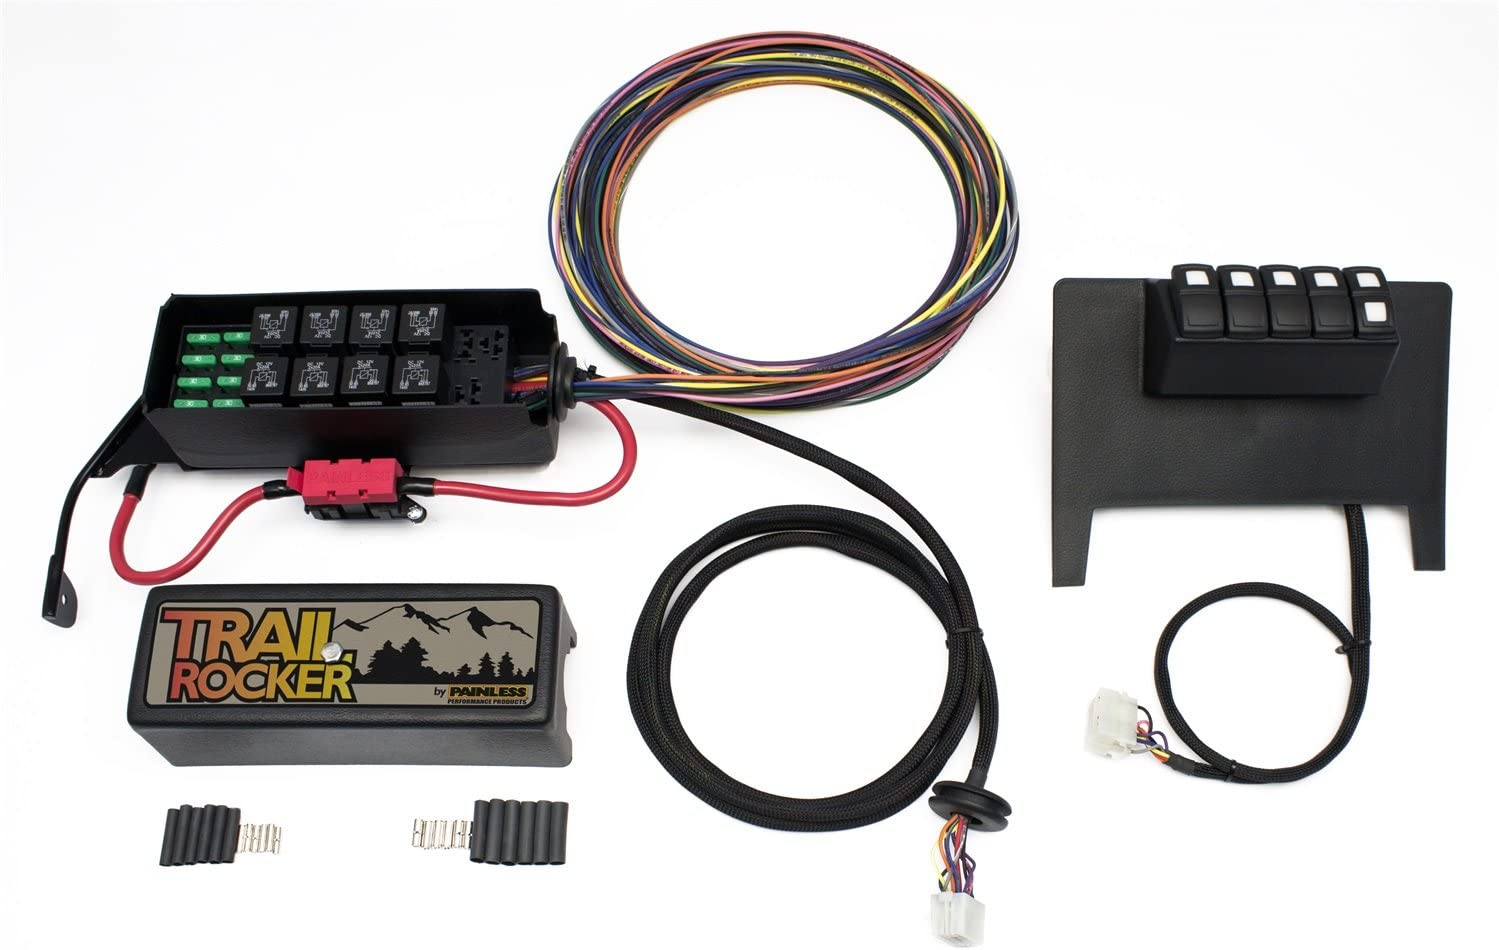 jeep wrangler fuse box clicking amazon com painless performance 57000 trail rocker system for  painless performance 57000 trail rocker